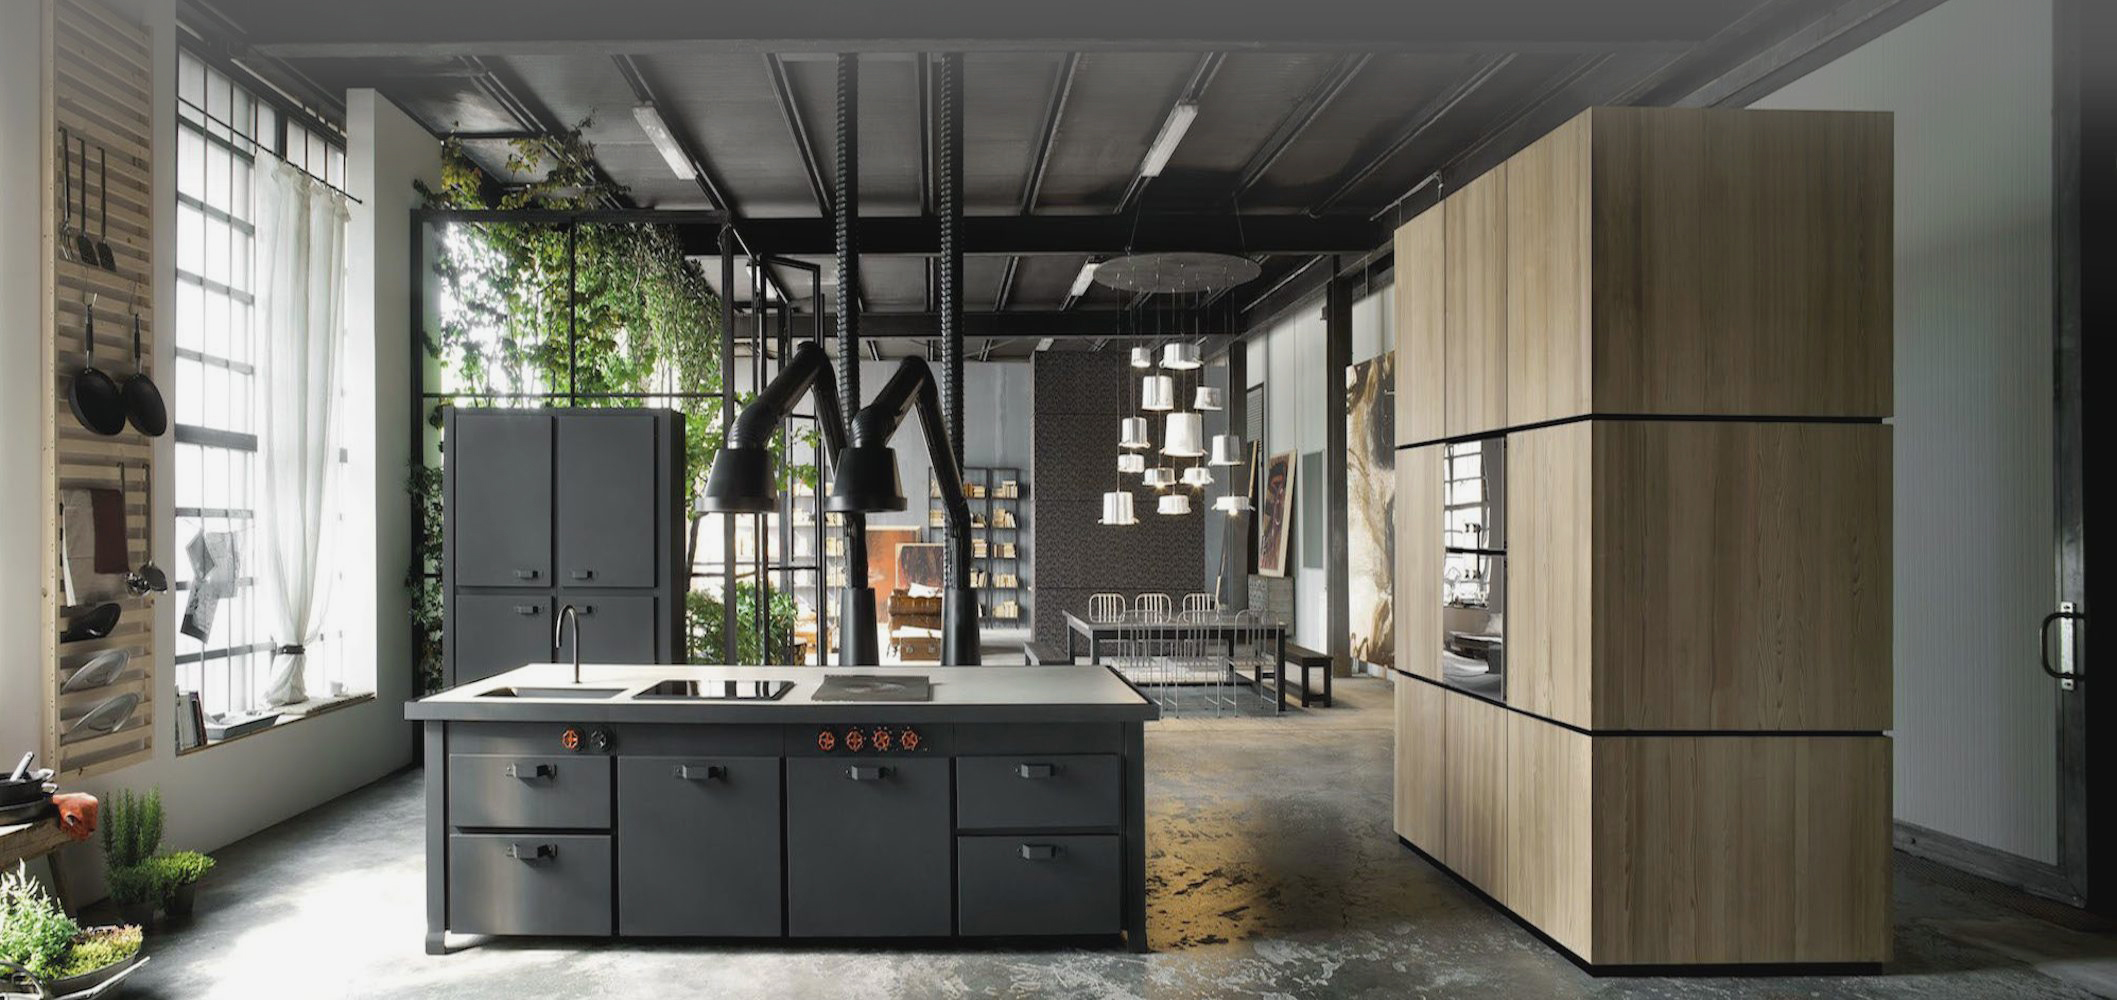 20 state of the art modern kitchen designs by reeva design for Industrial modern kitchen designs